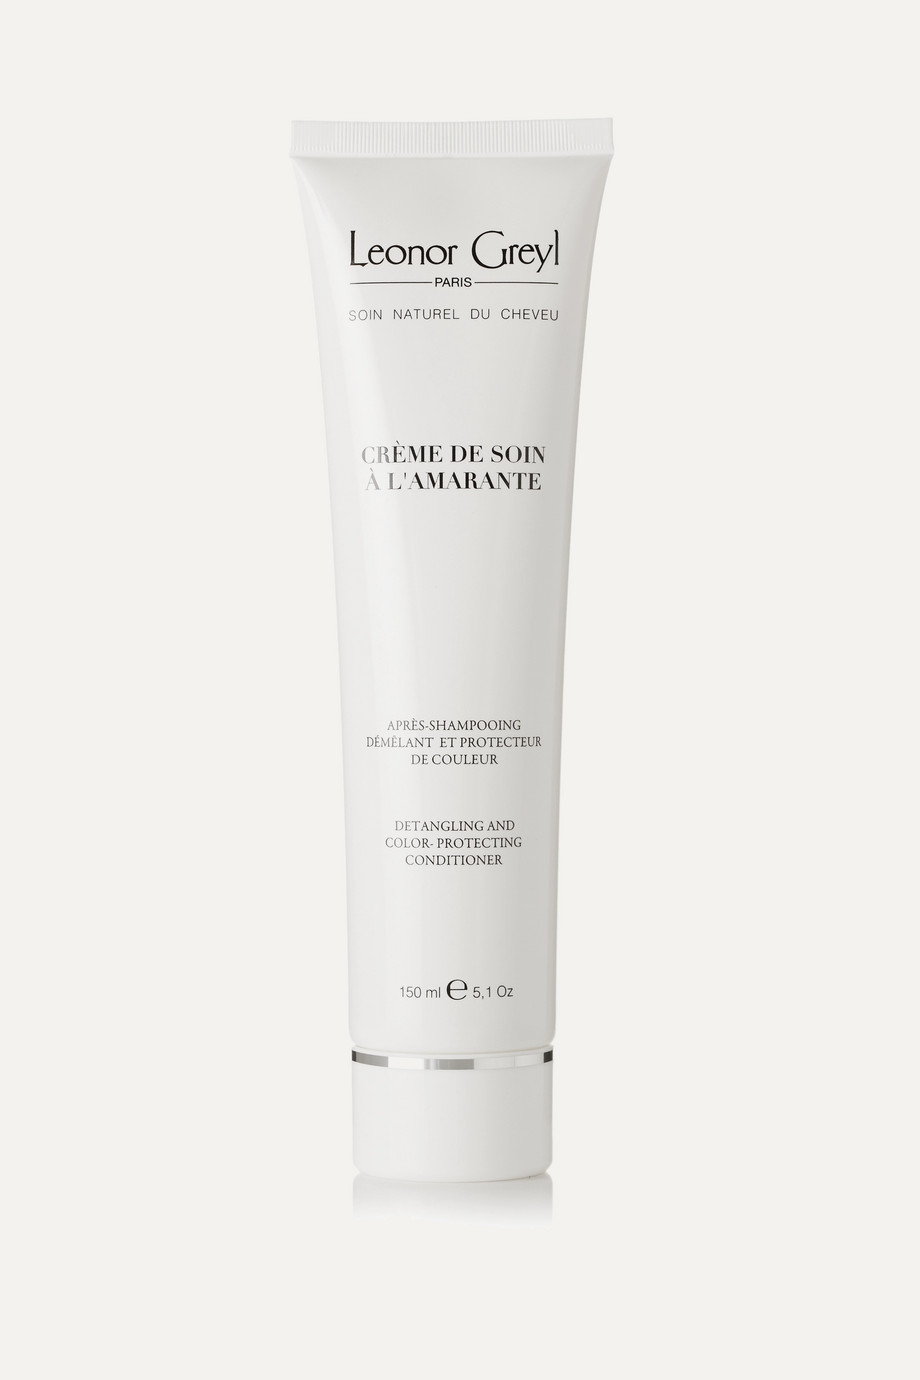 Leonor Greyl Paris Crème de Soin à L'Amarante Detangling and Color-Protecting Conditioner, 150ml